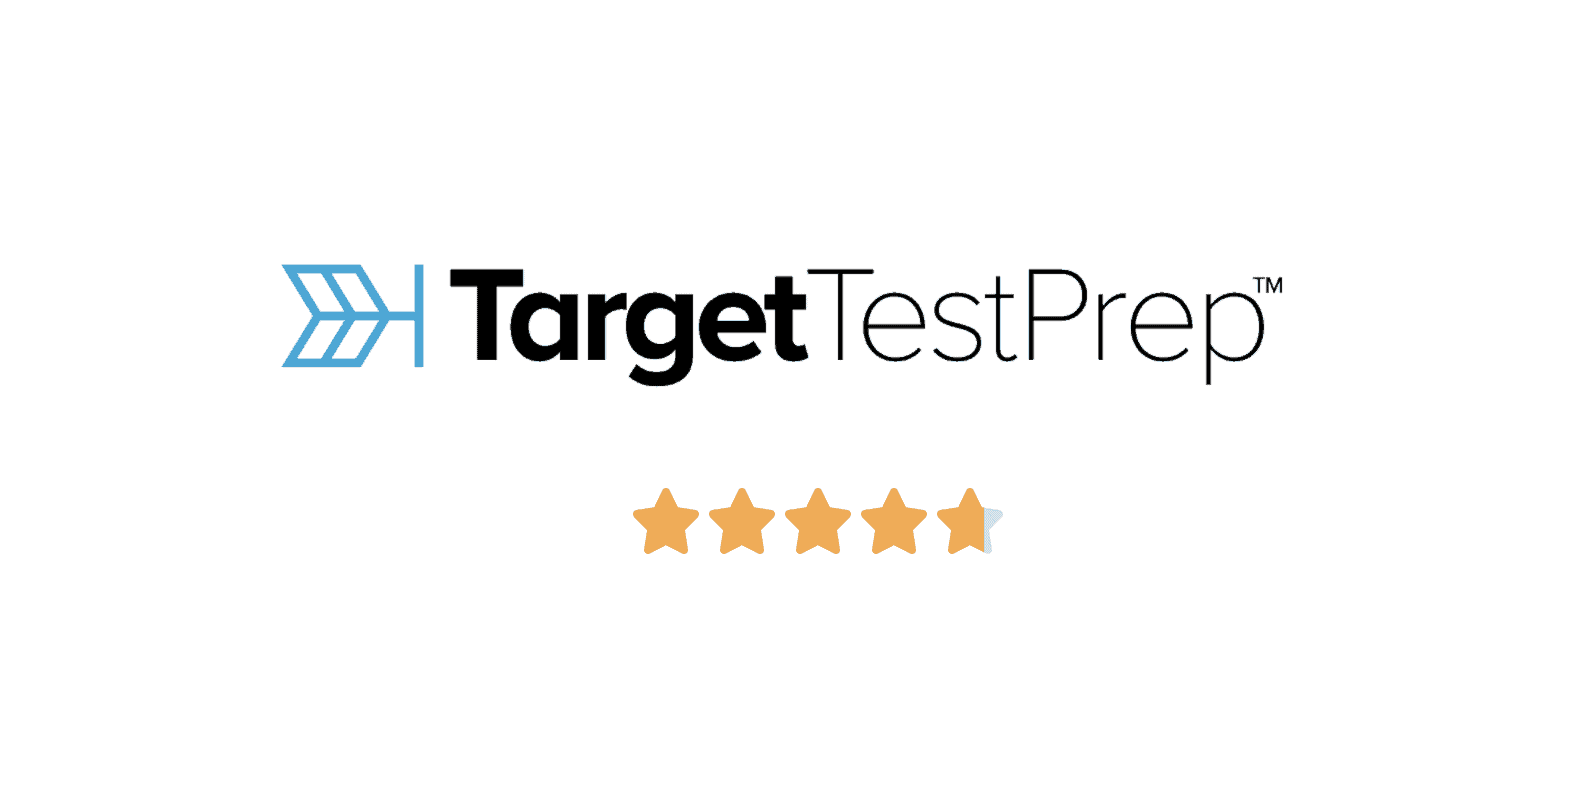 logo of target test prep with star rating